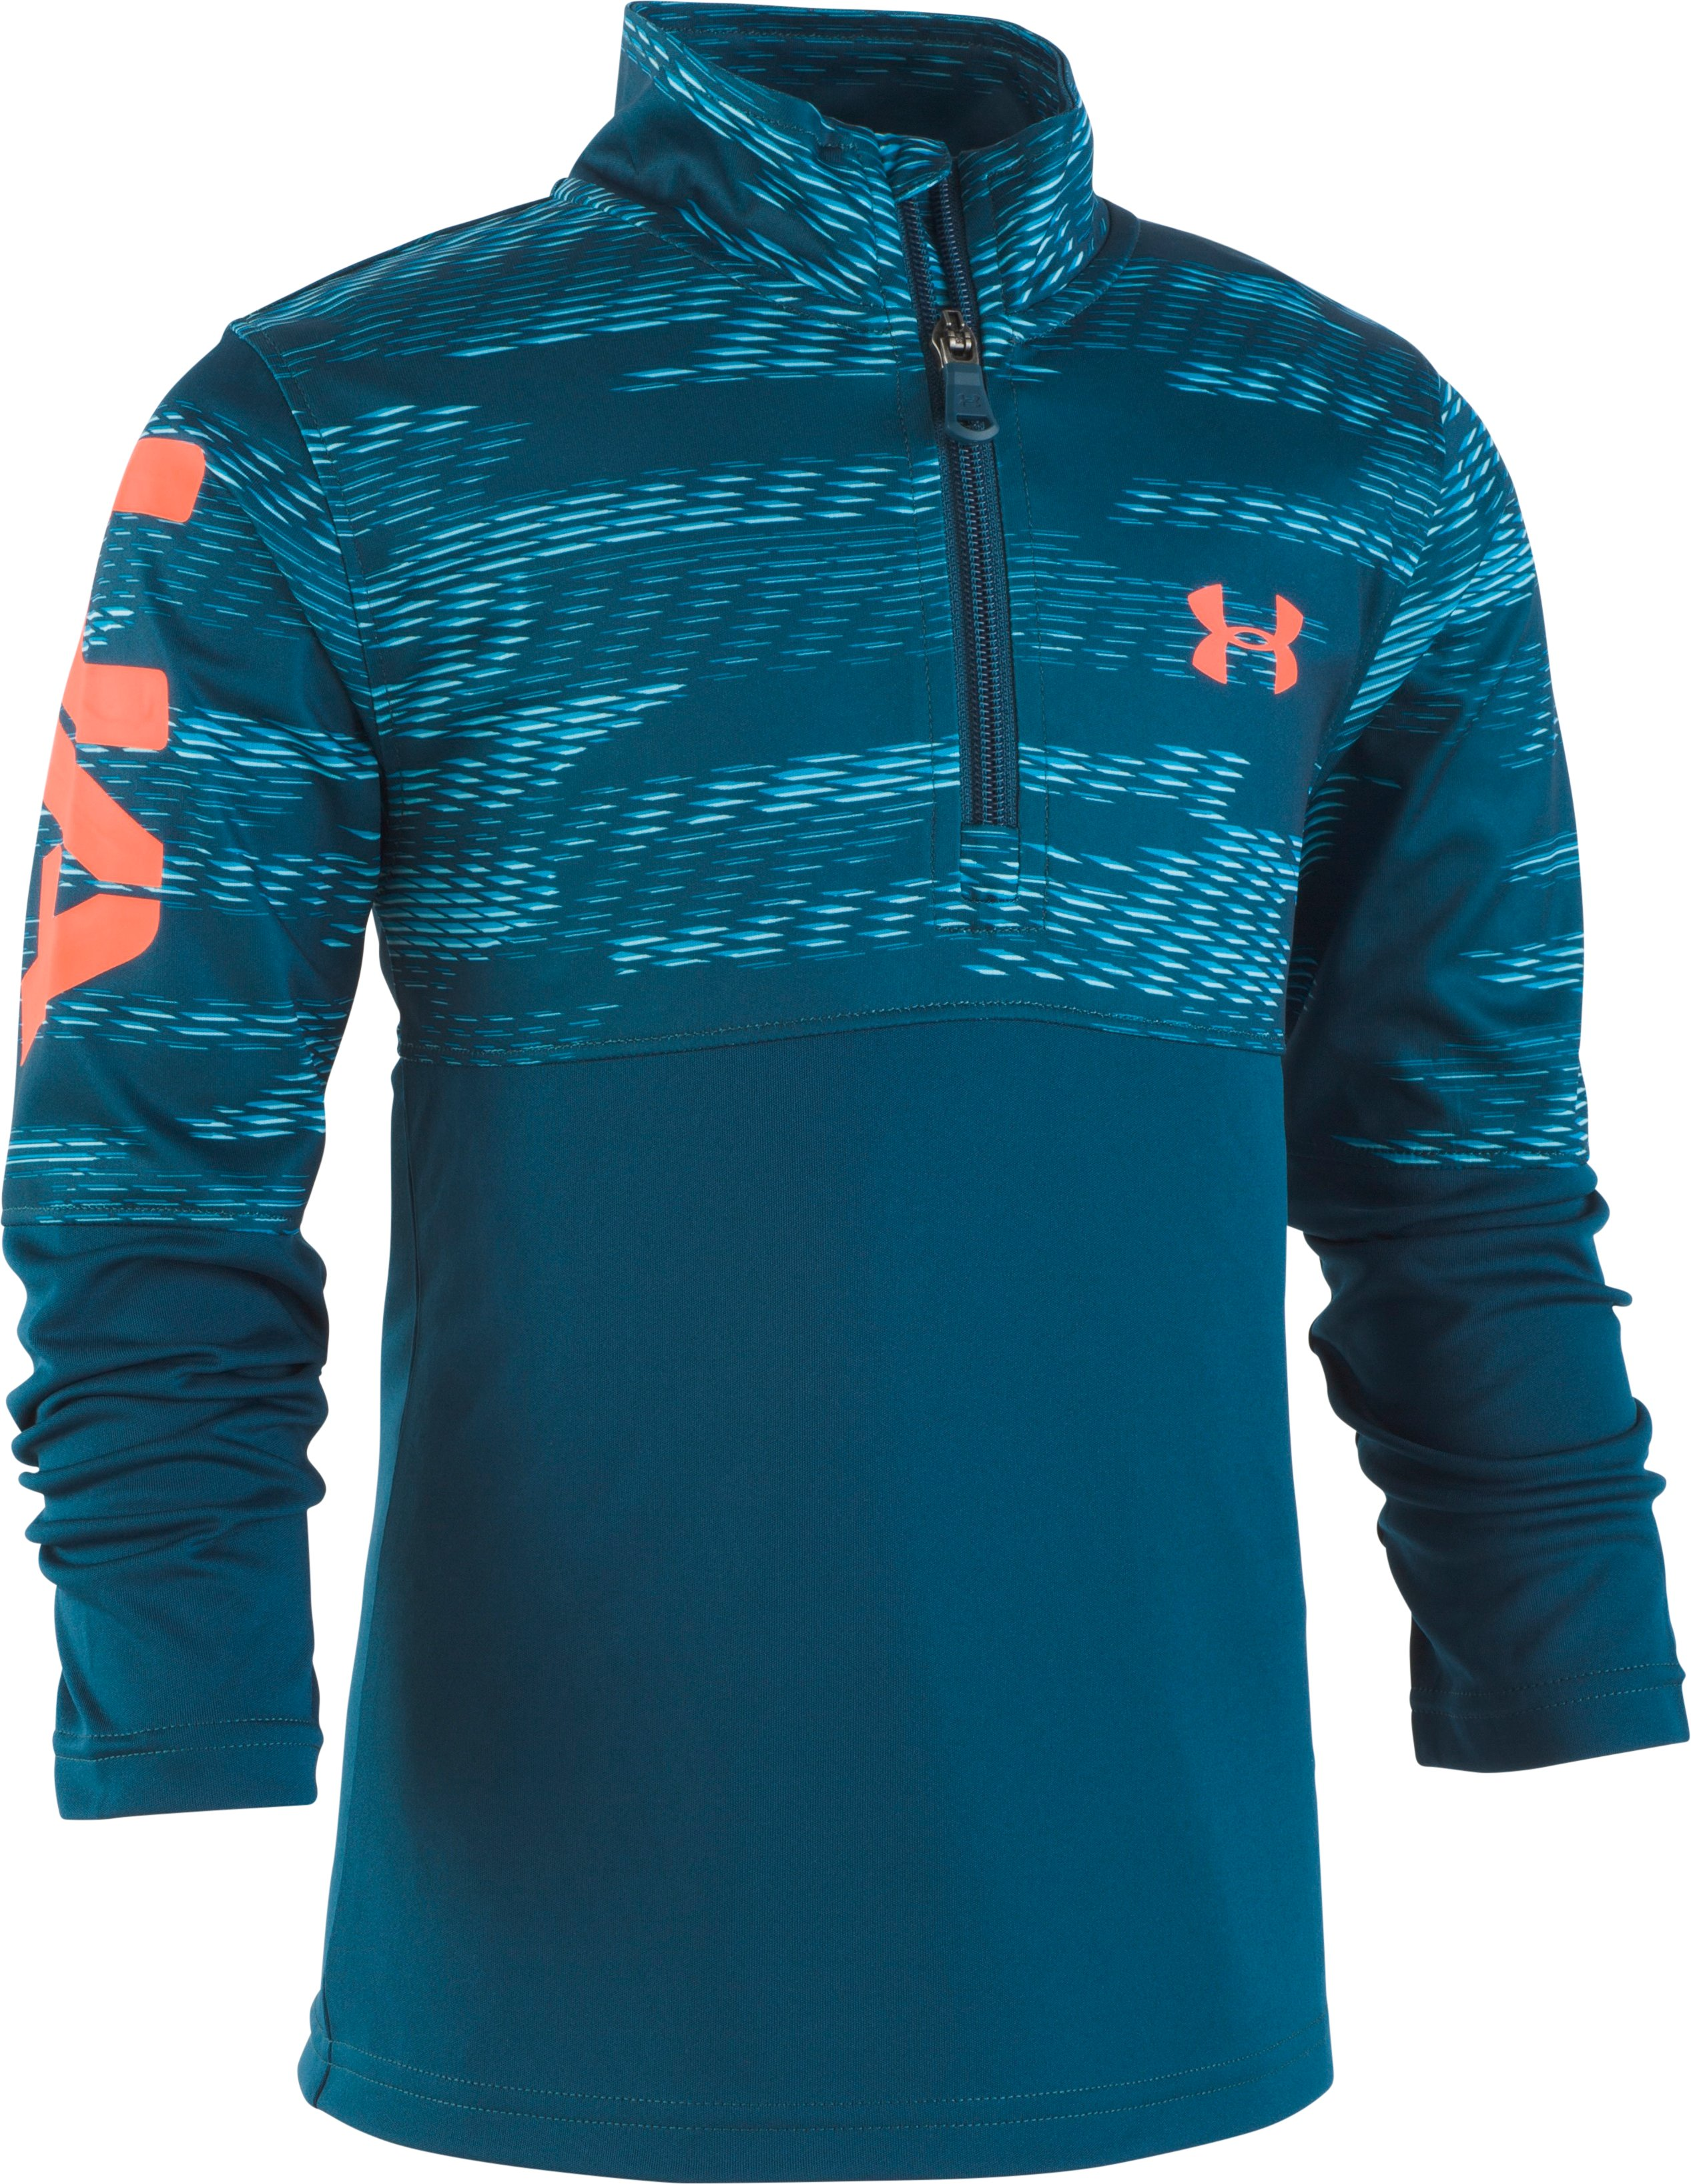 Boys' Pre-School UA Travel ¼ Zip, Techno Teal, zoomed